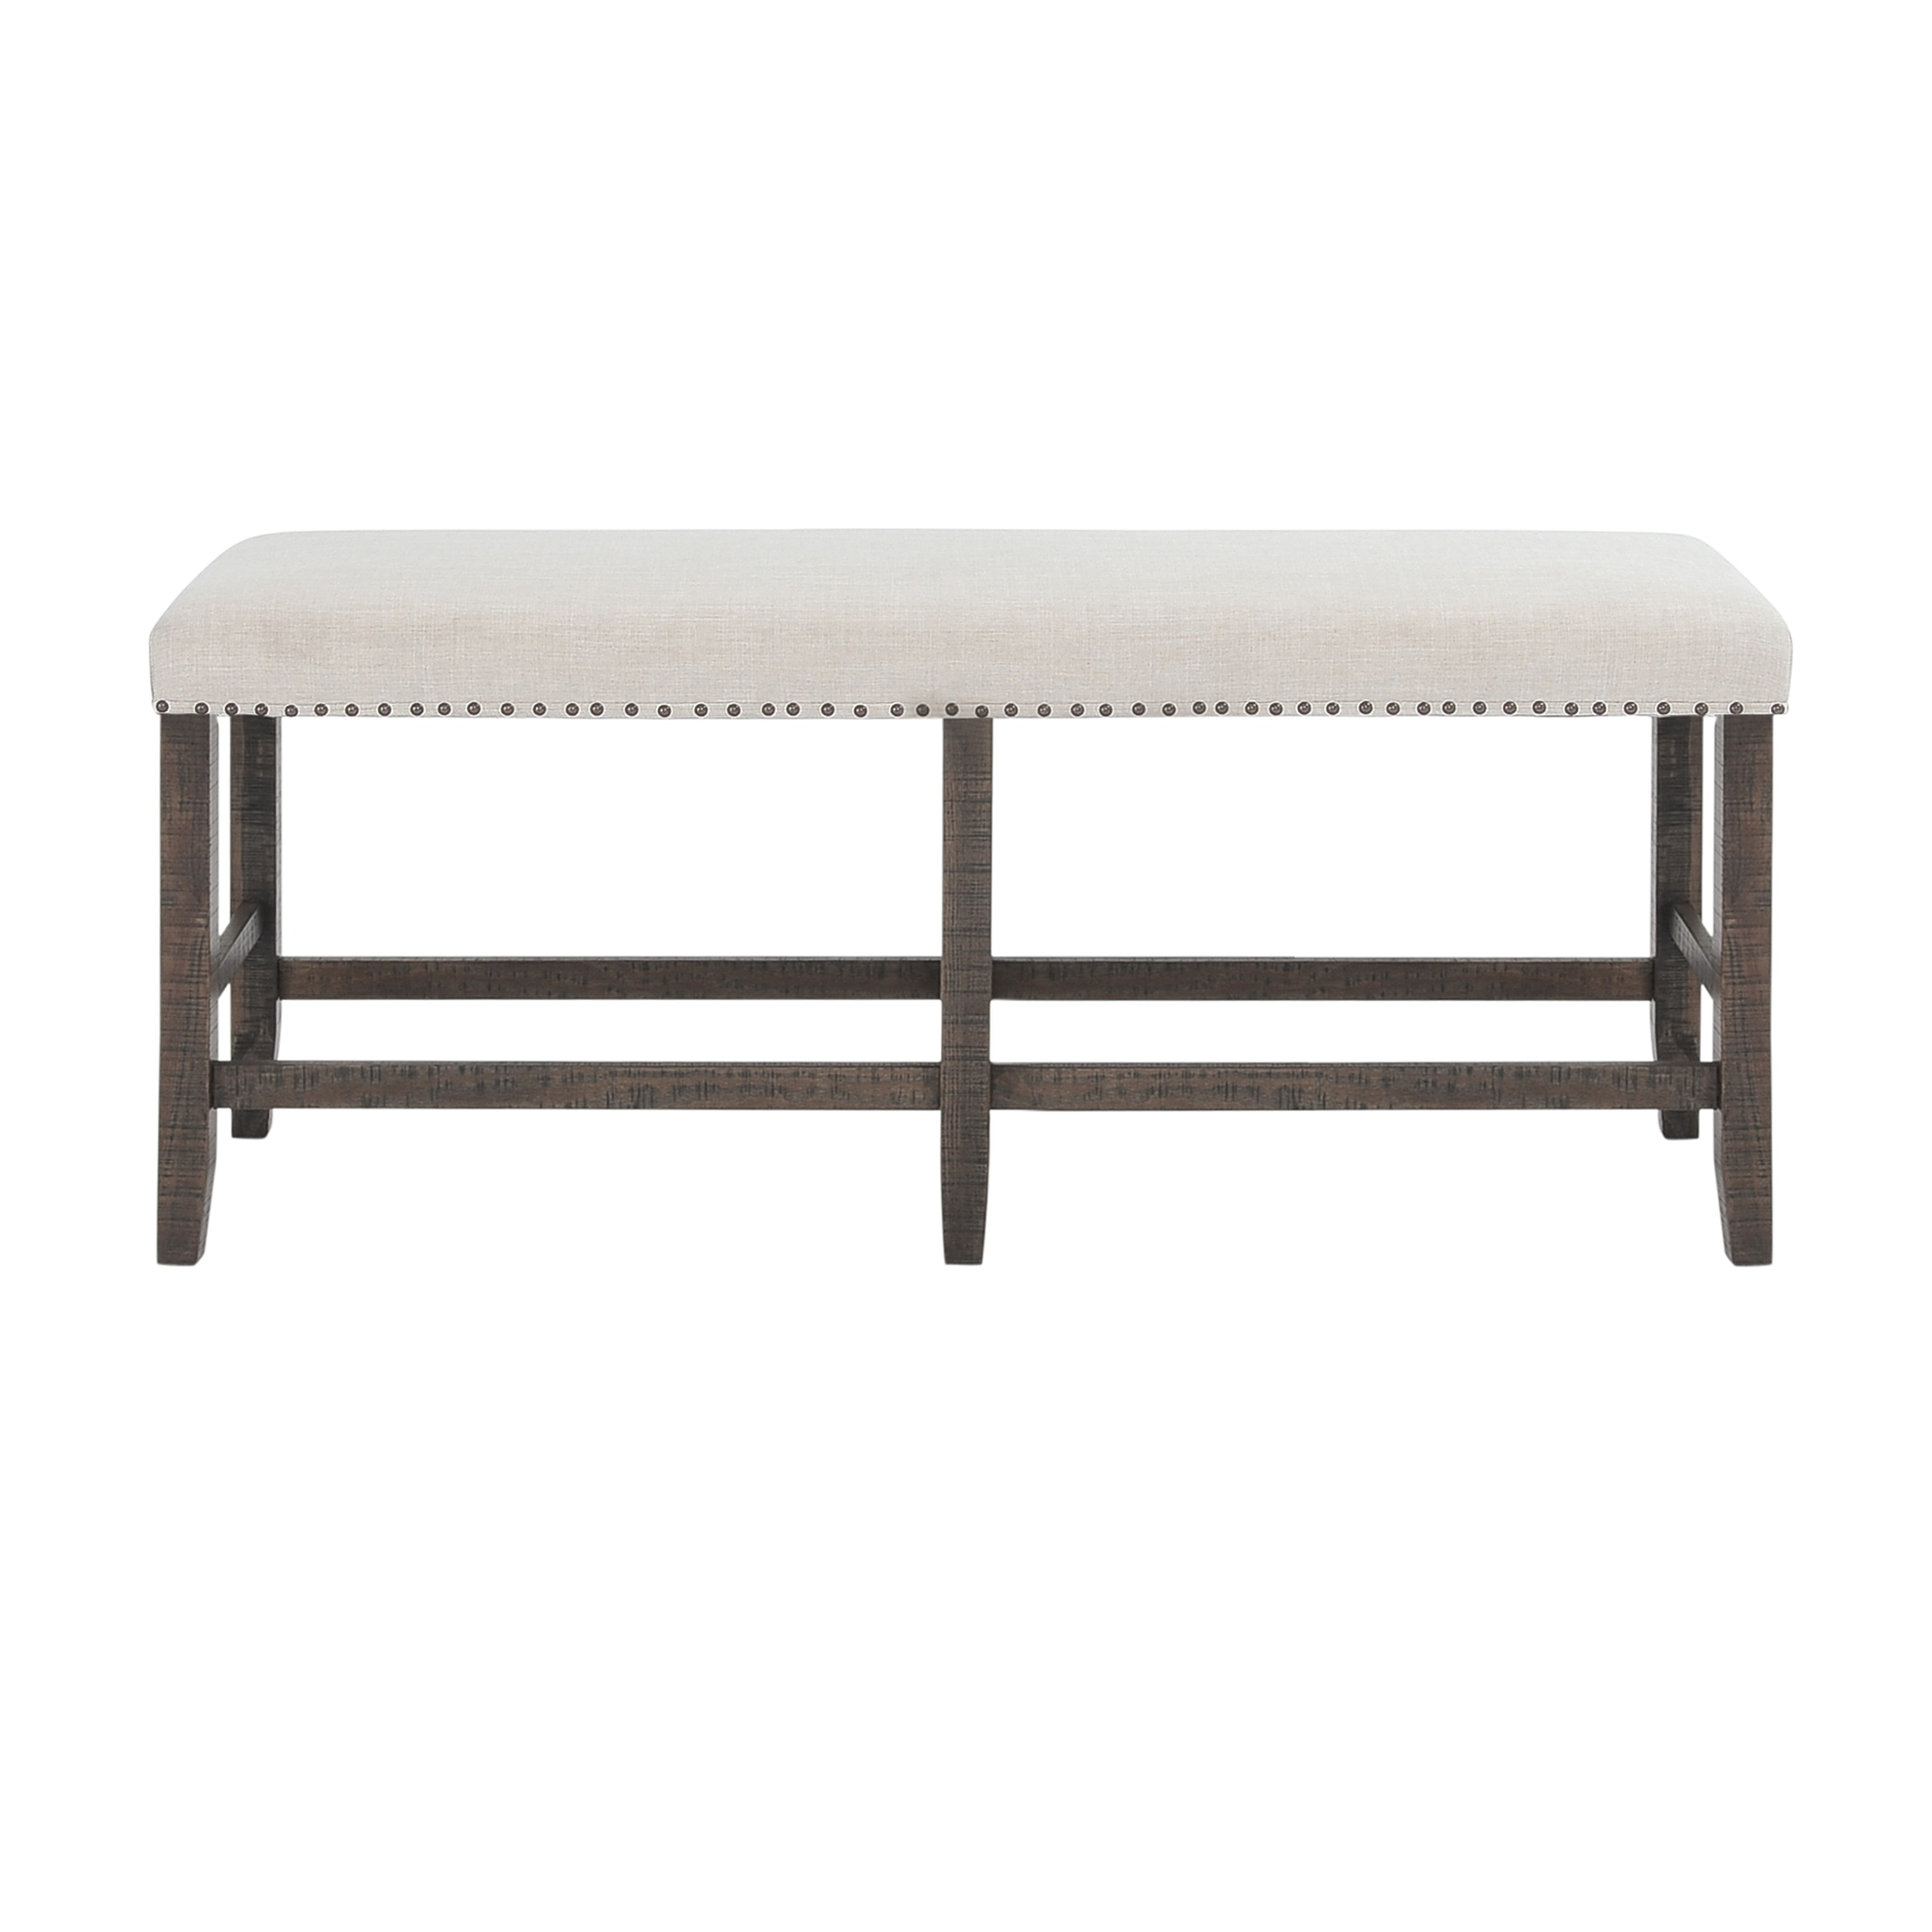 Willow Creek Counter Height Bench by Jofran at Jofran